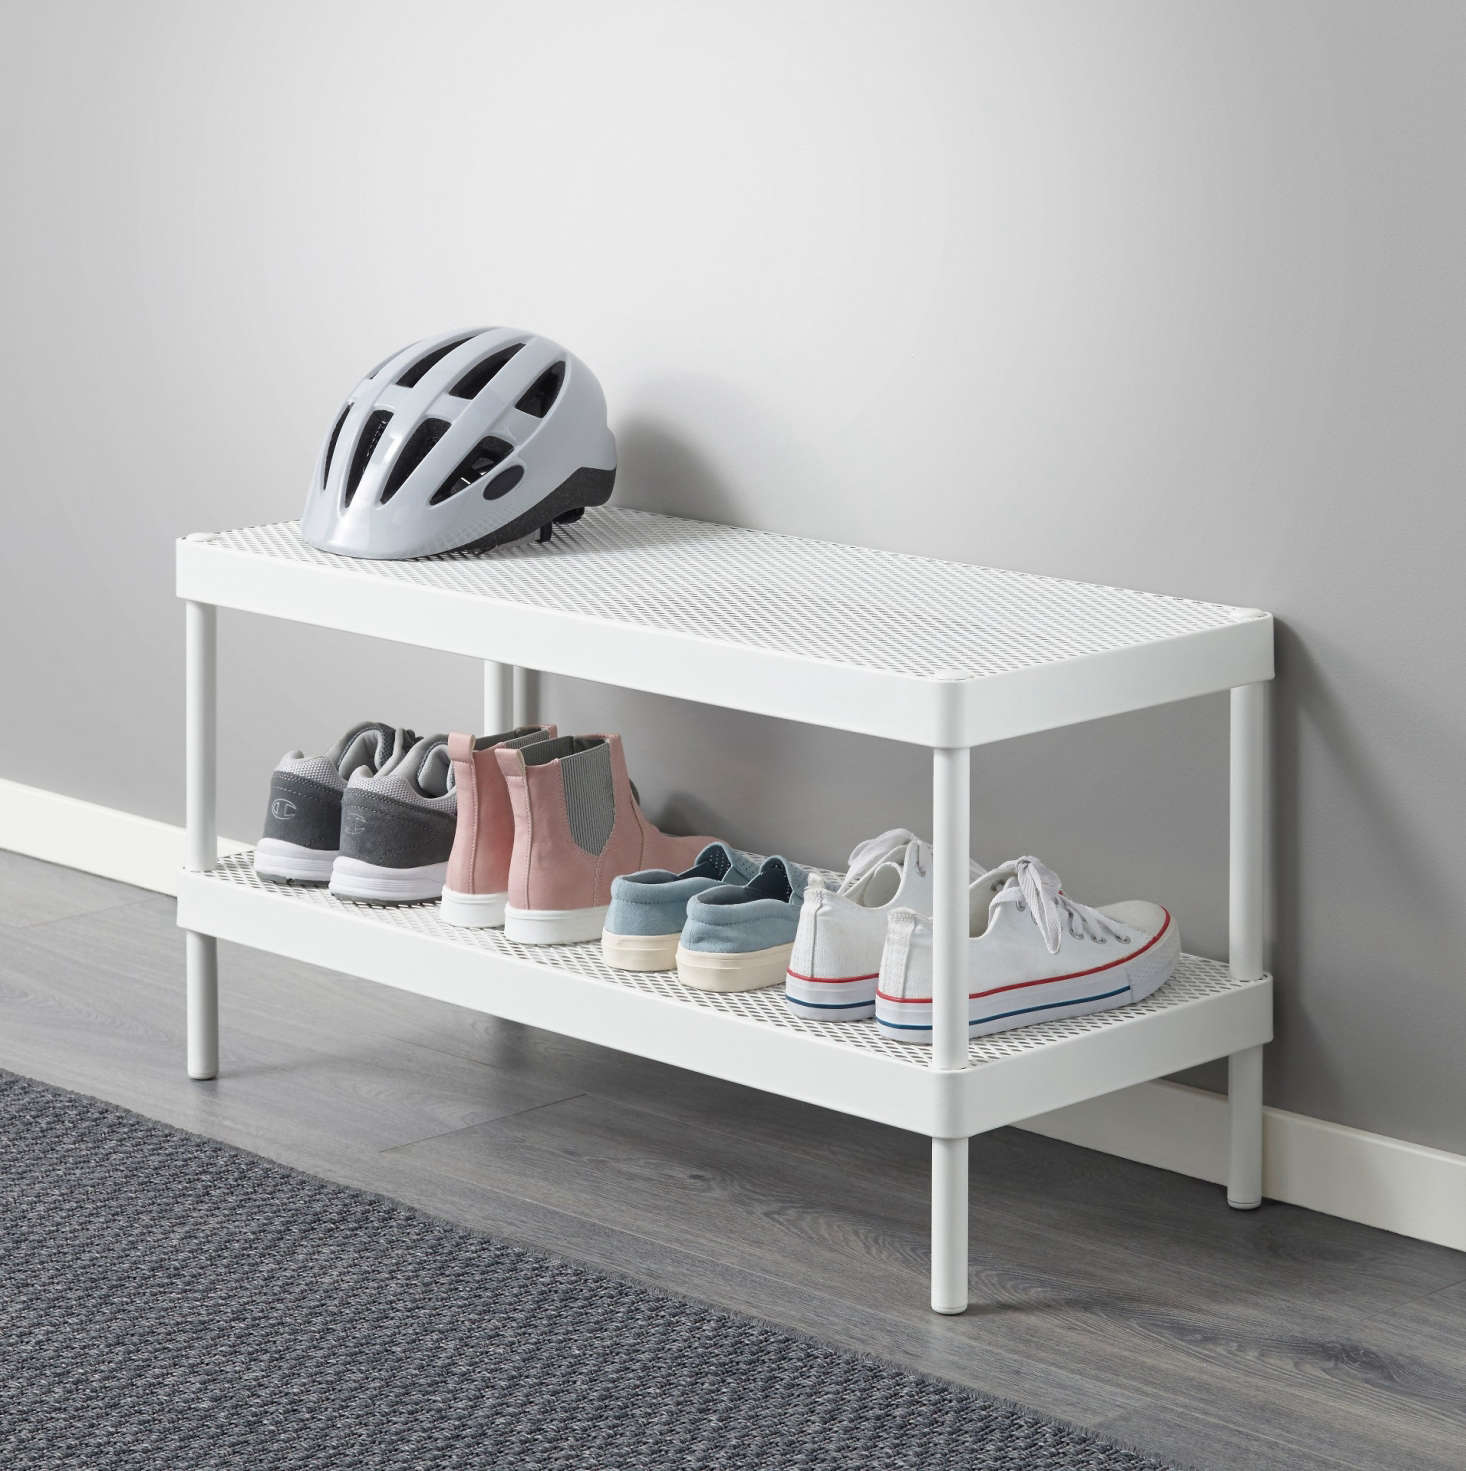 Ikea Storage Solutions For Minimalists On A Budget Remodelista